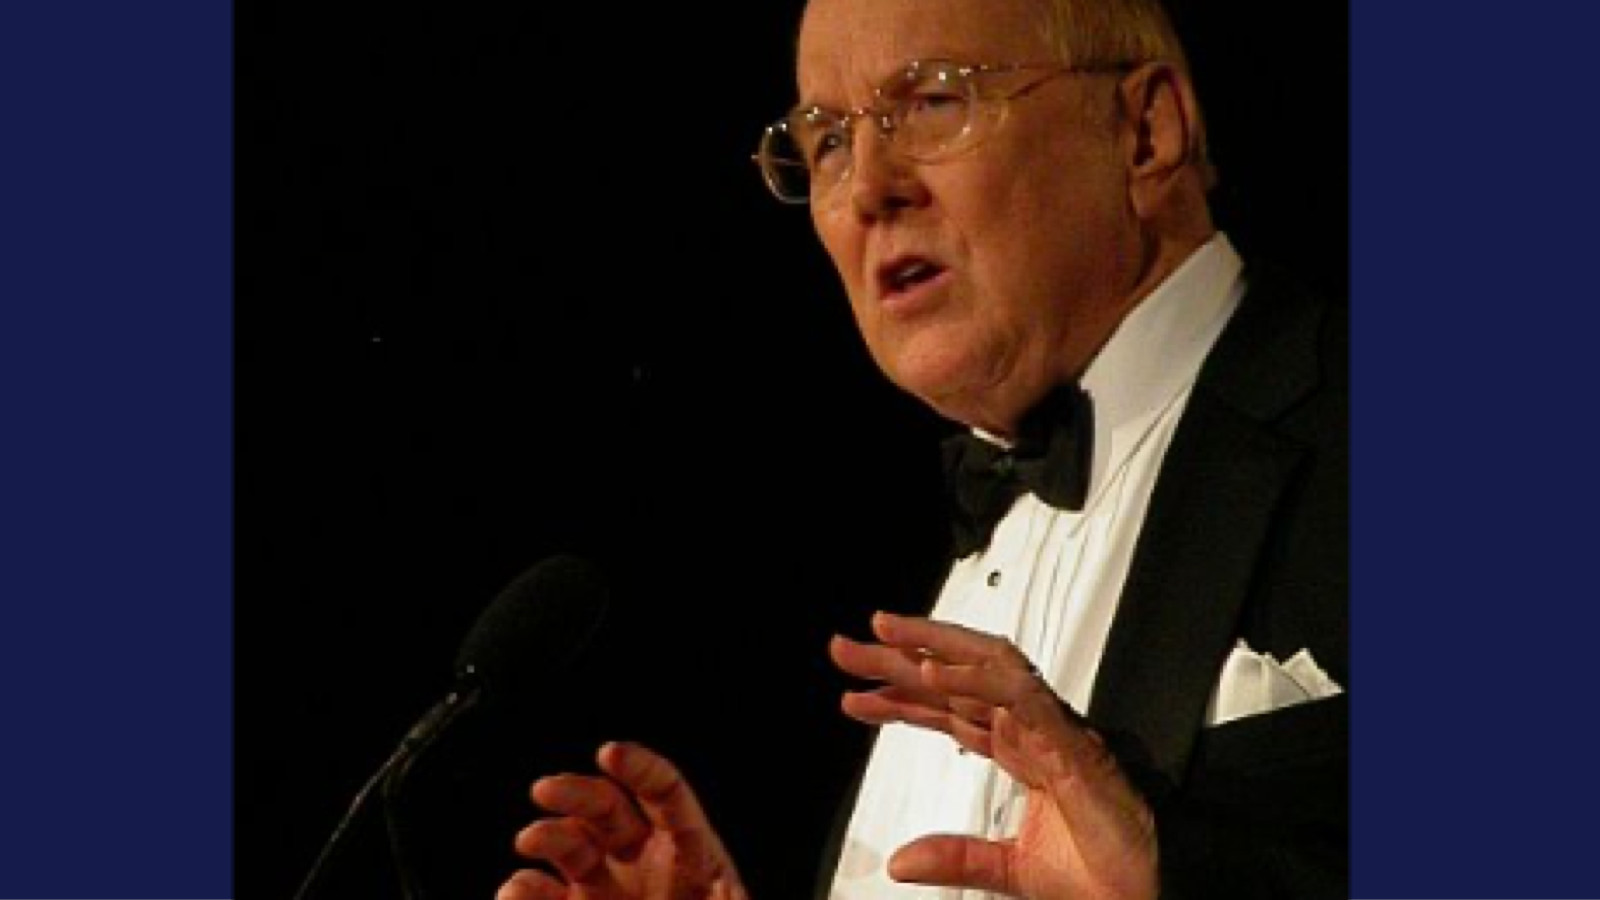 James Dobson in 2007 in Washington, DC at the Values Voters conference